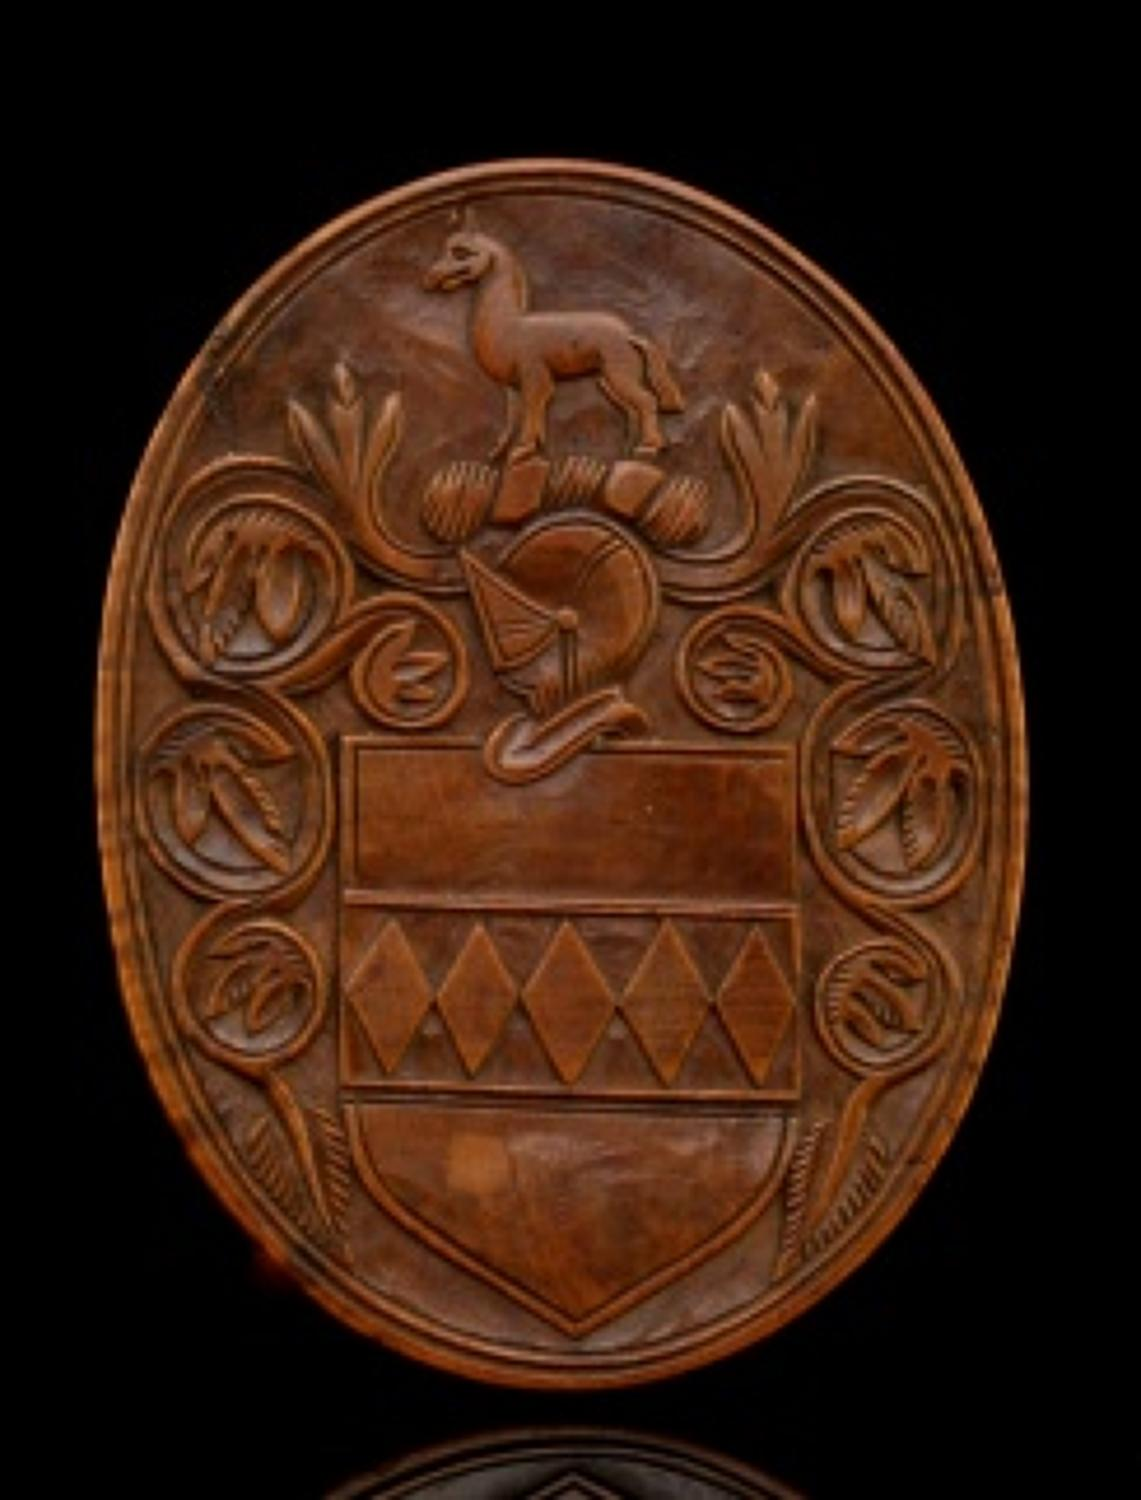 17th century oval tobacco box